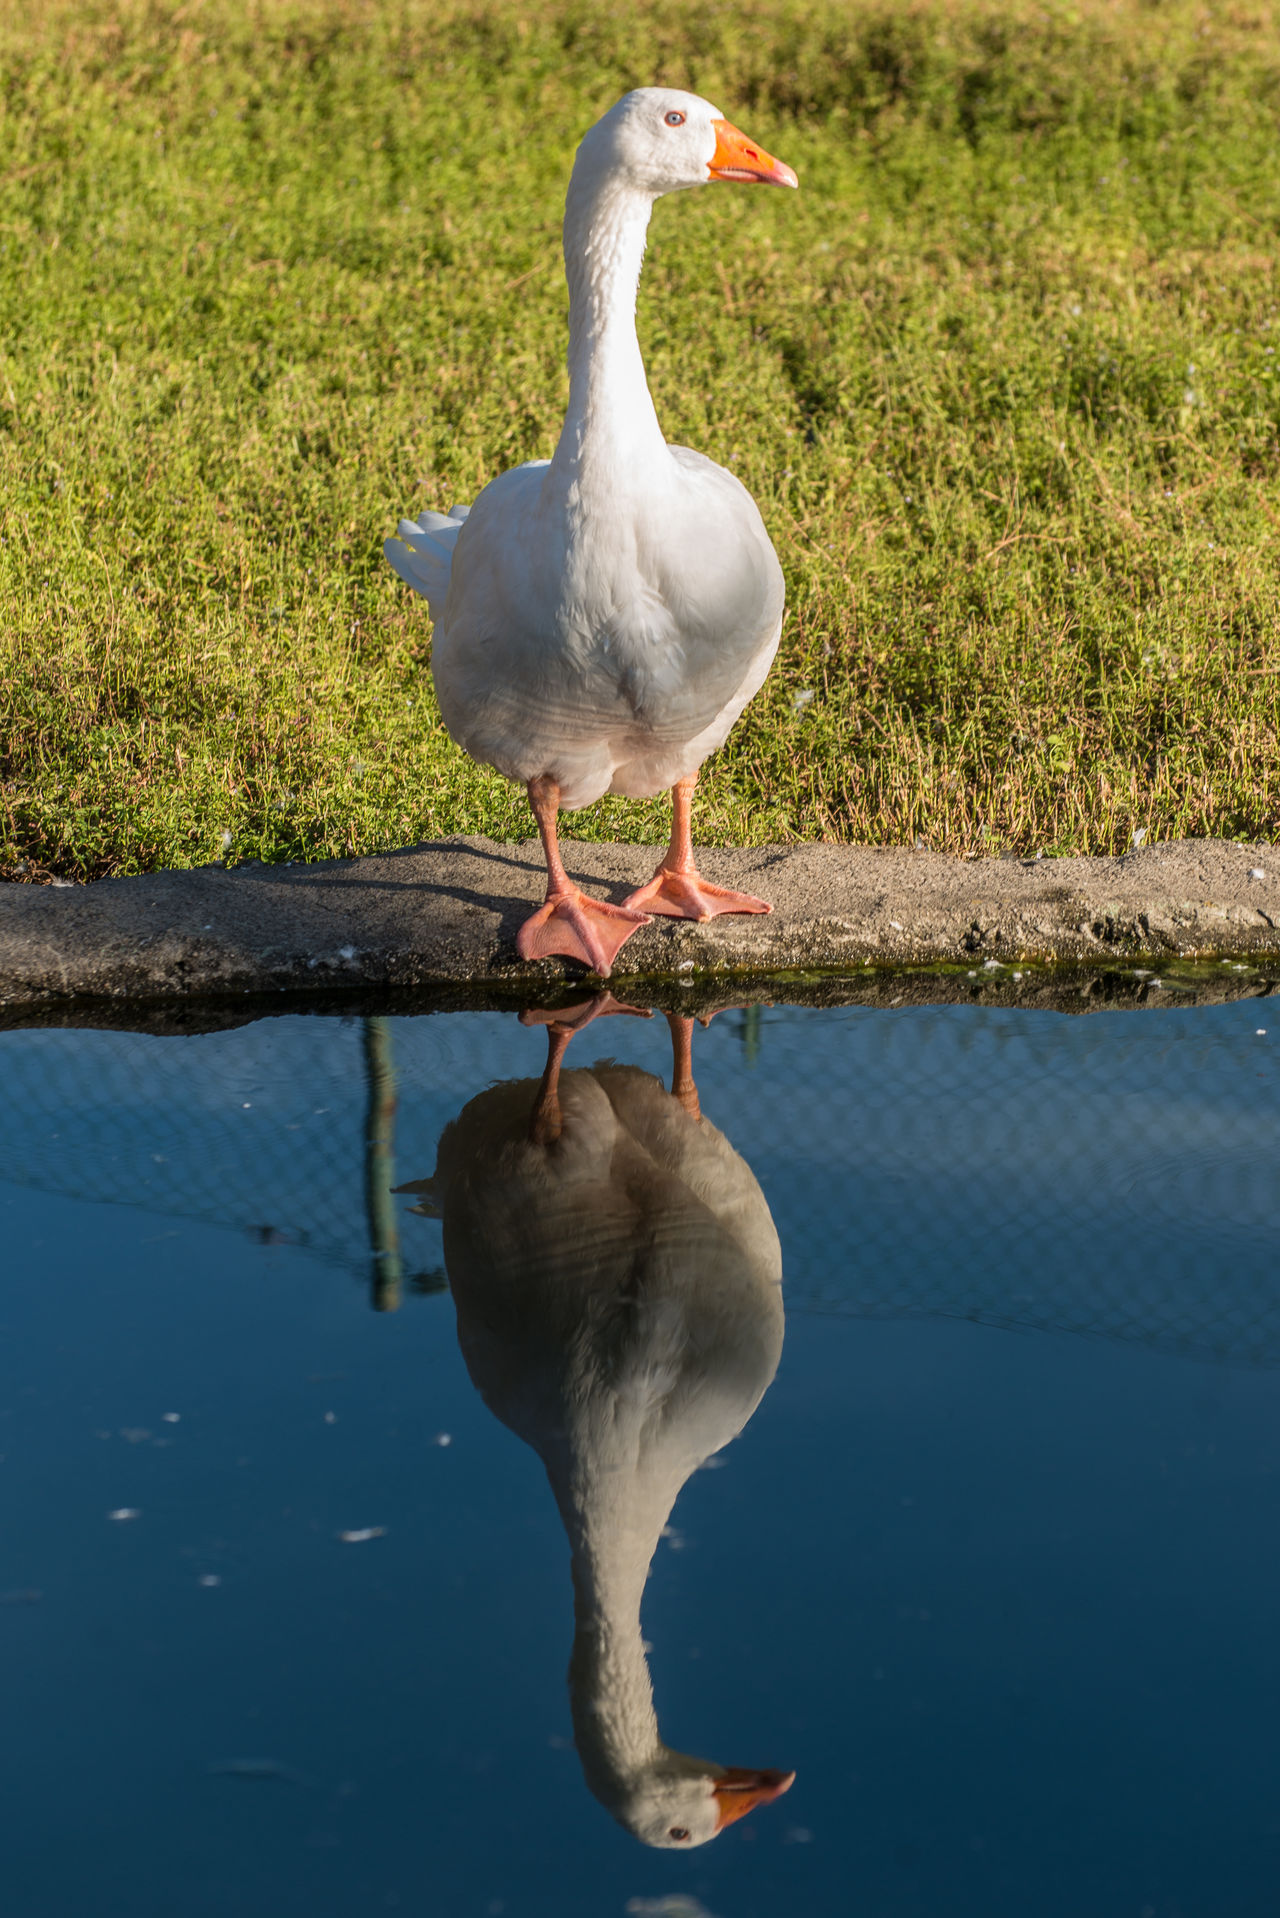 goose bird Animal Animal Themes Beauty In Nature Bird Close-up Day Focus On Foreground Goose Grass Green Color Minimalism Mirror Nature No People Outdoors Reflections Reflections In The Water Water White White Color